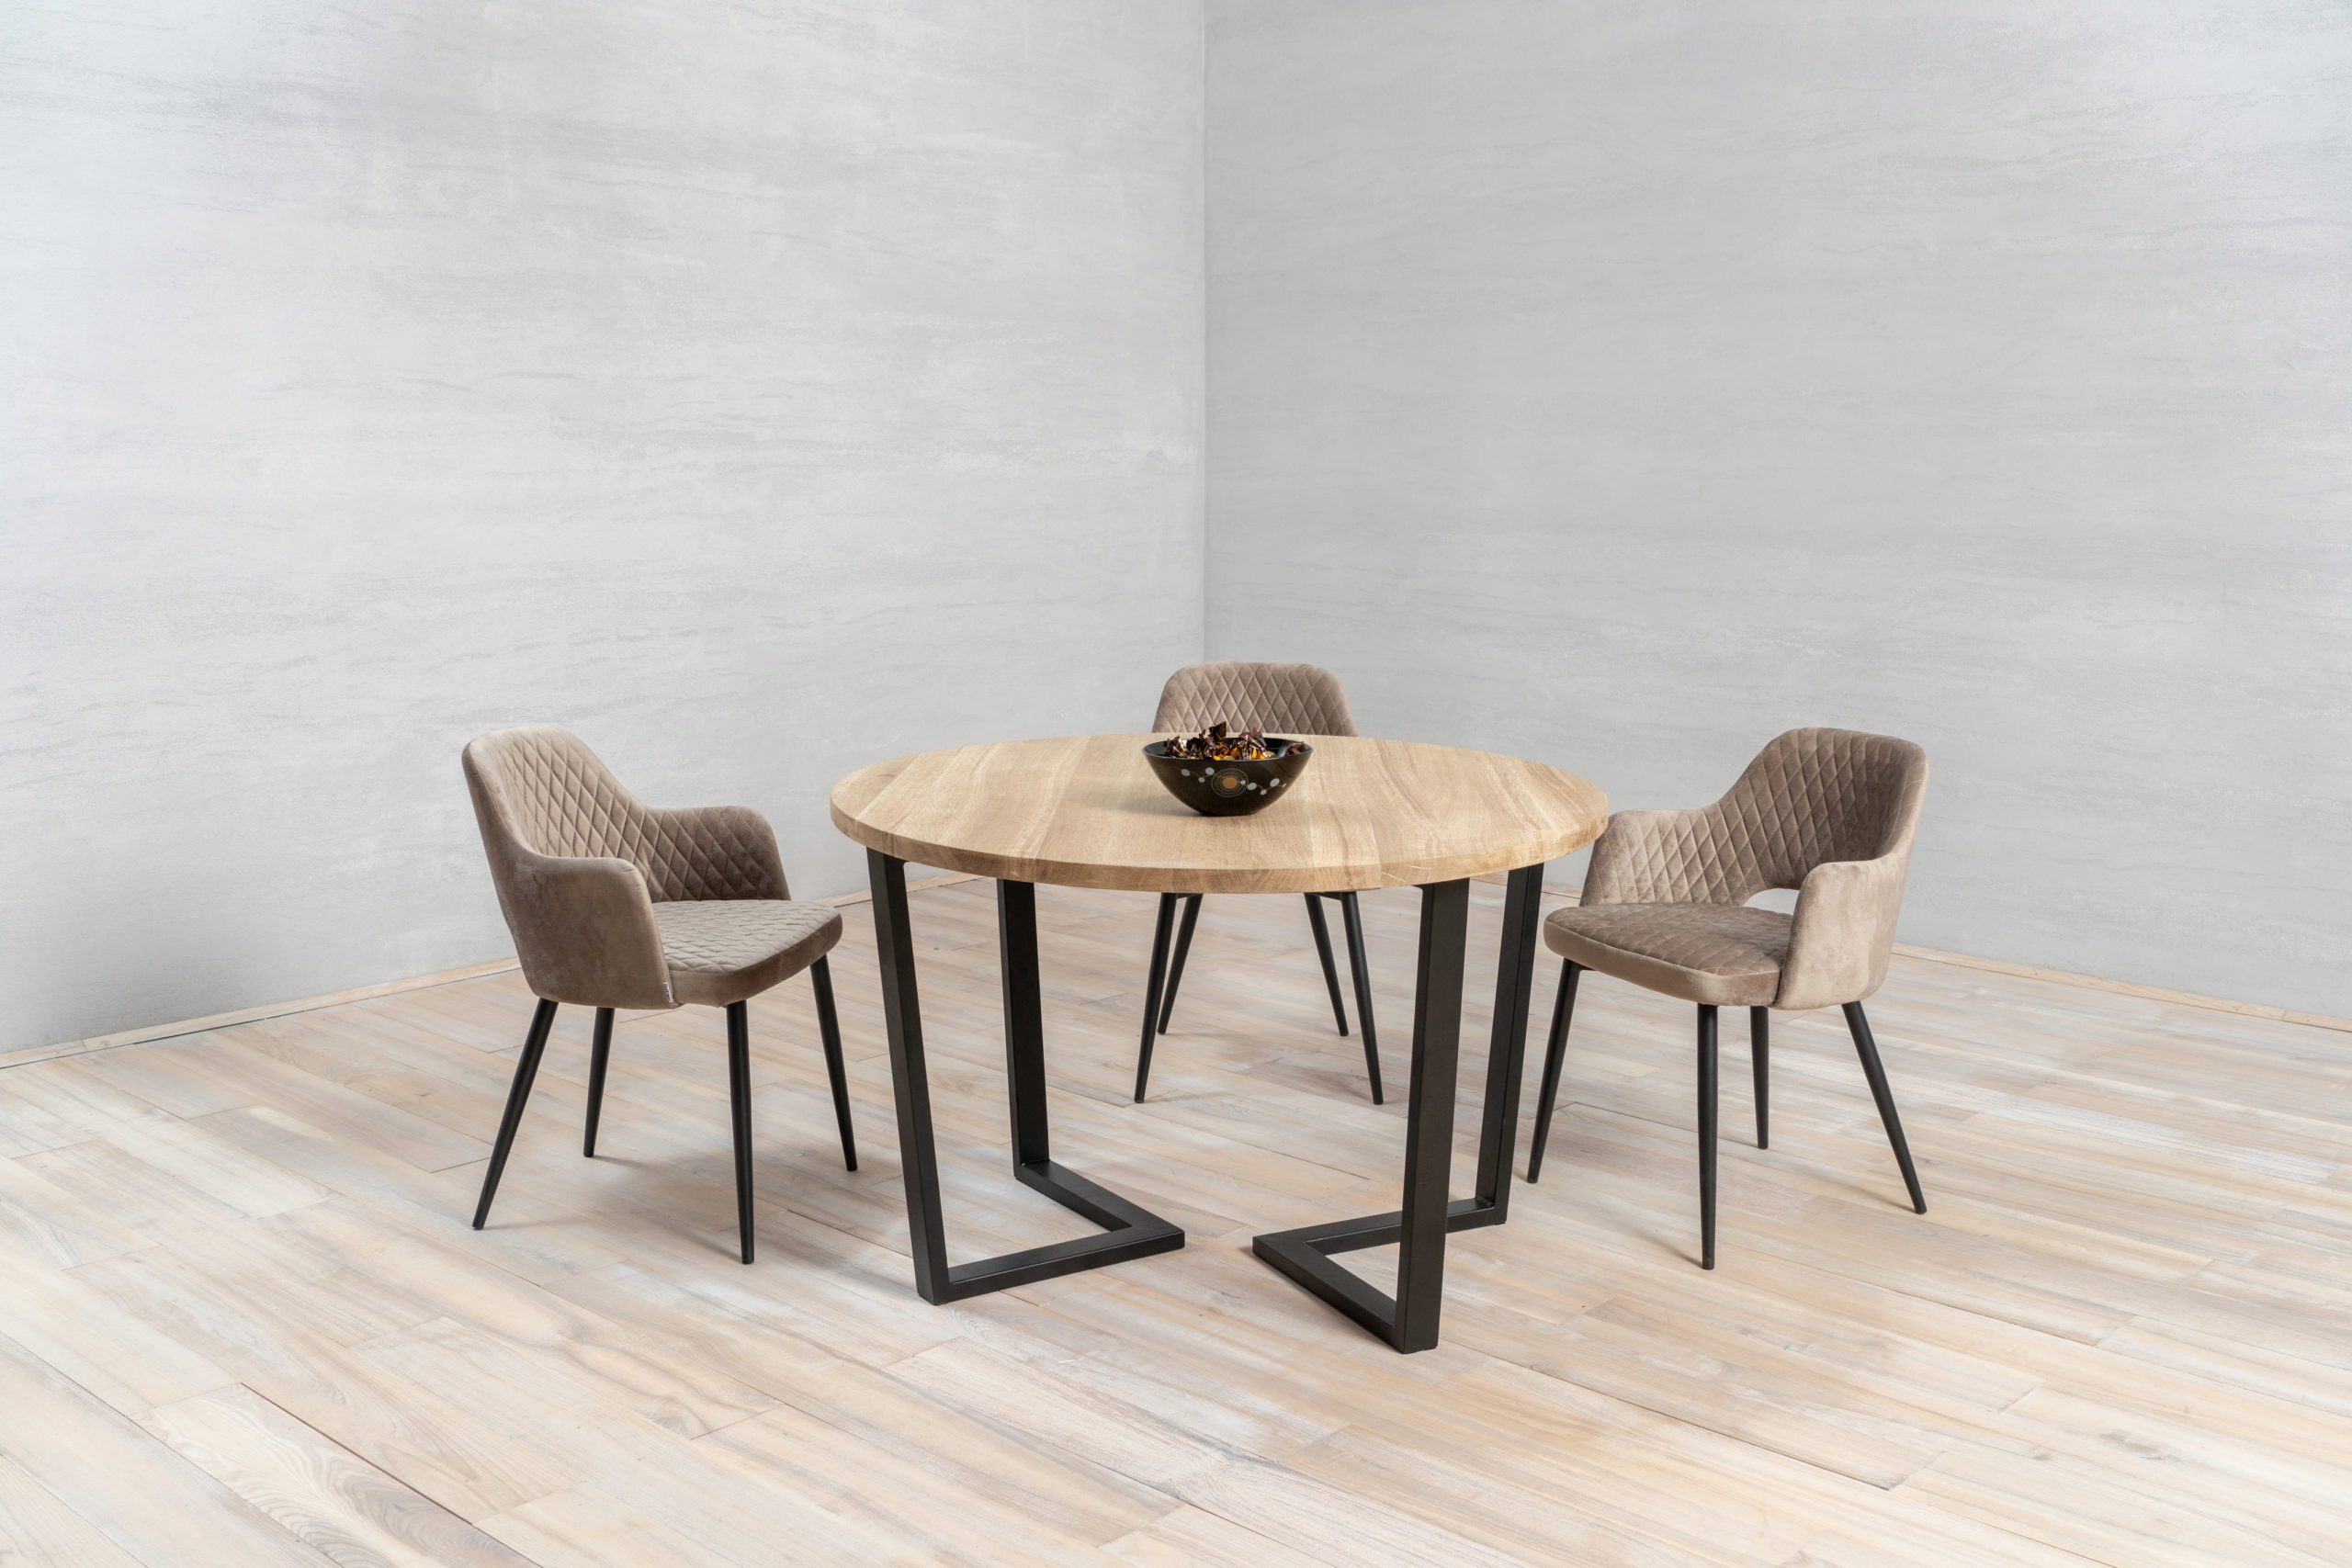 54 inch round table top